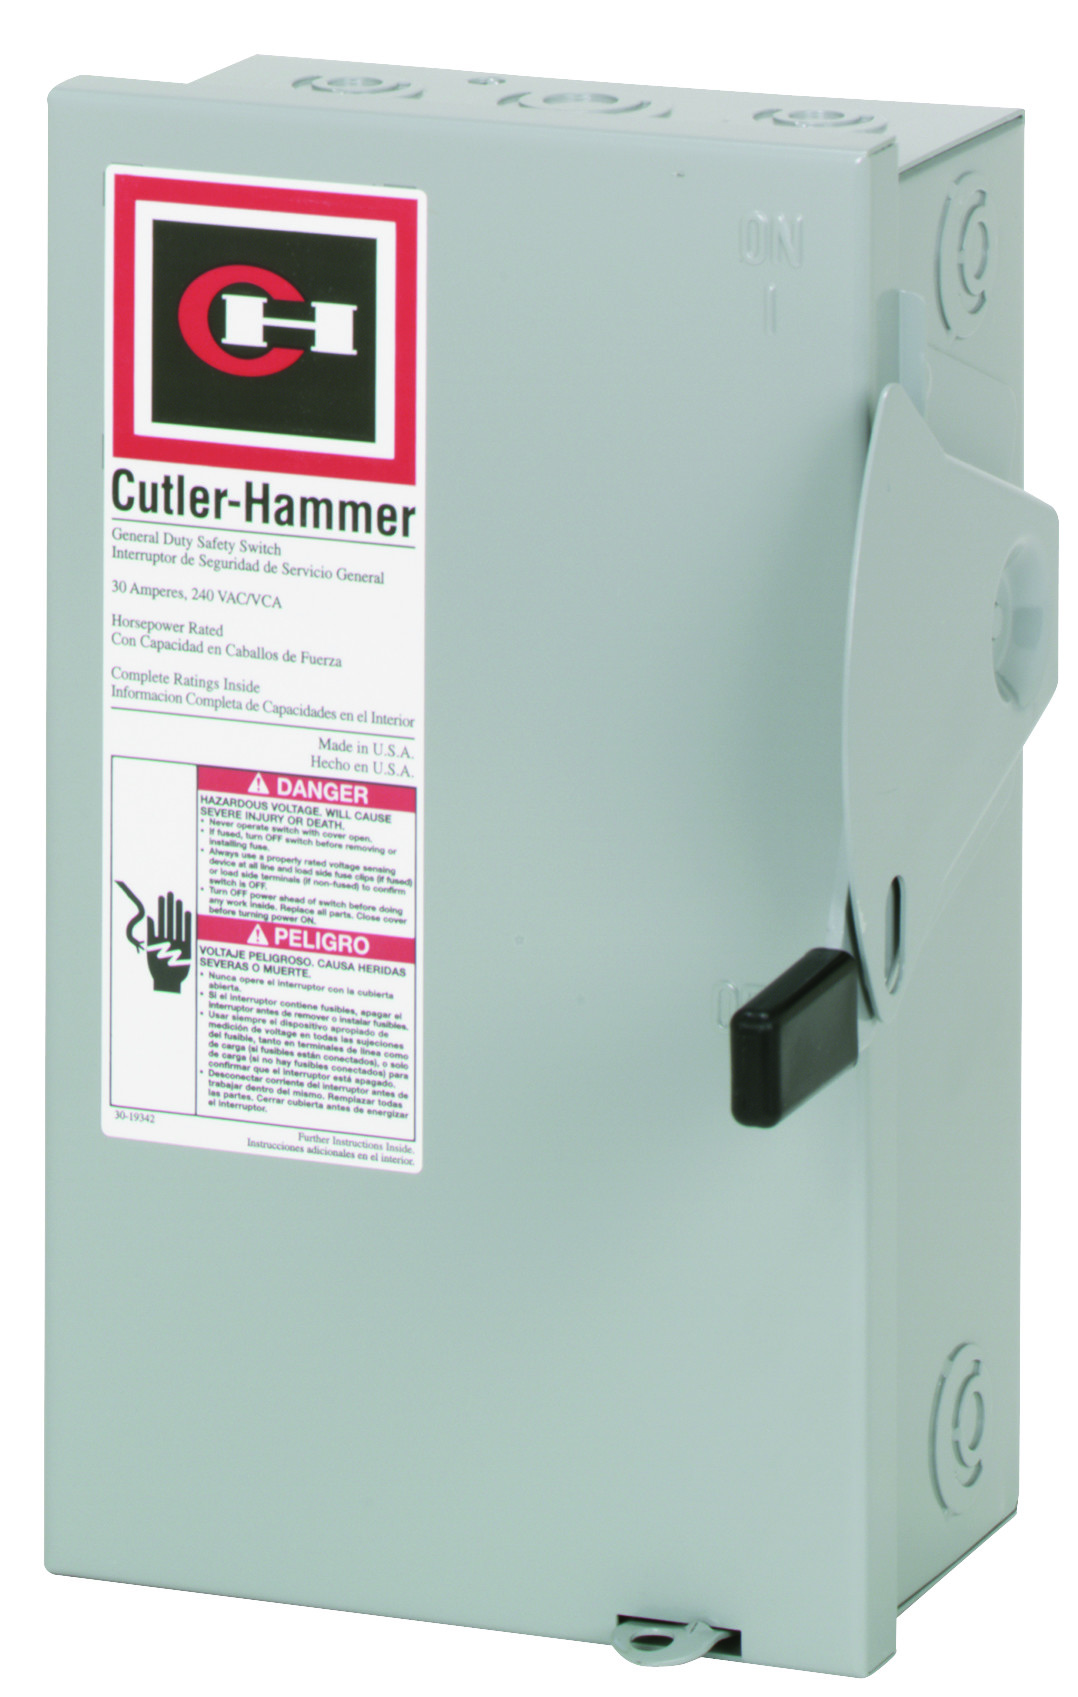 cutler hammer dg221ngb 30 amp fusible/indr safety switch (782113120171-1)  hardware and tools